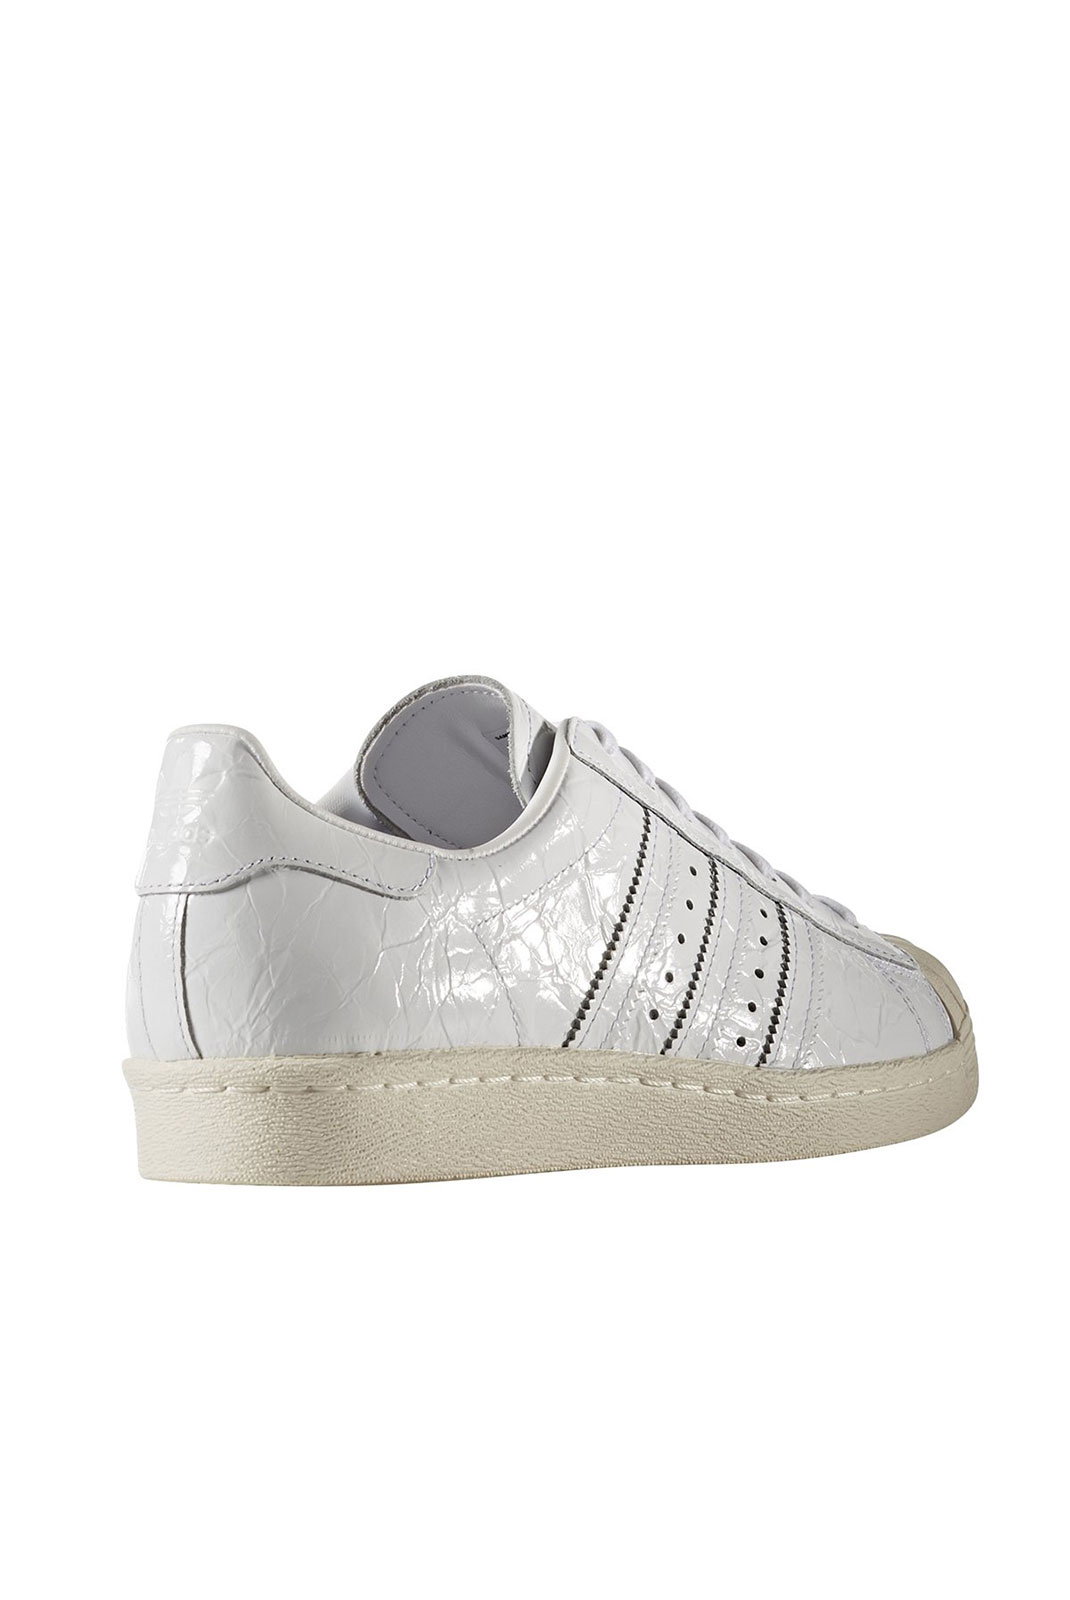 Baskets / Sneakers  Adidas BB2056 SUPERSTAR 80S W WHITE